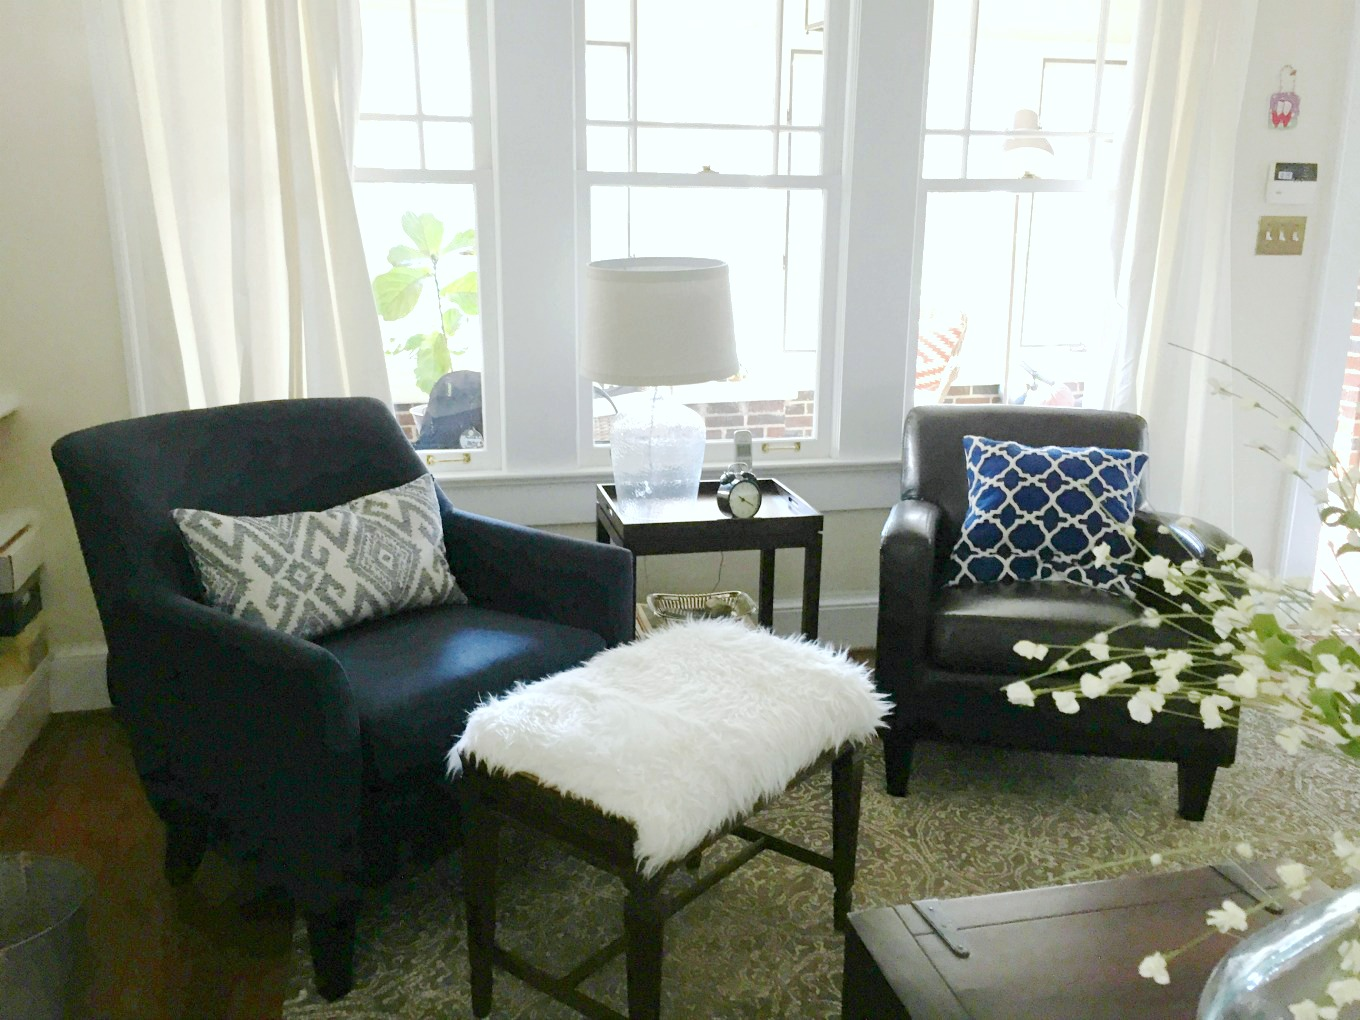 Lighter living room transformation for spring - thediybungalow.com